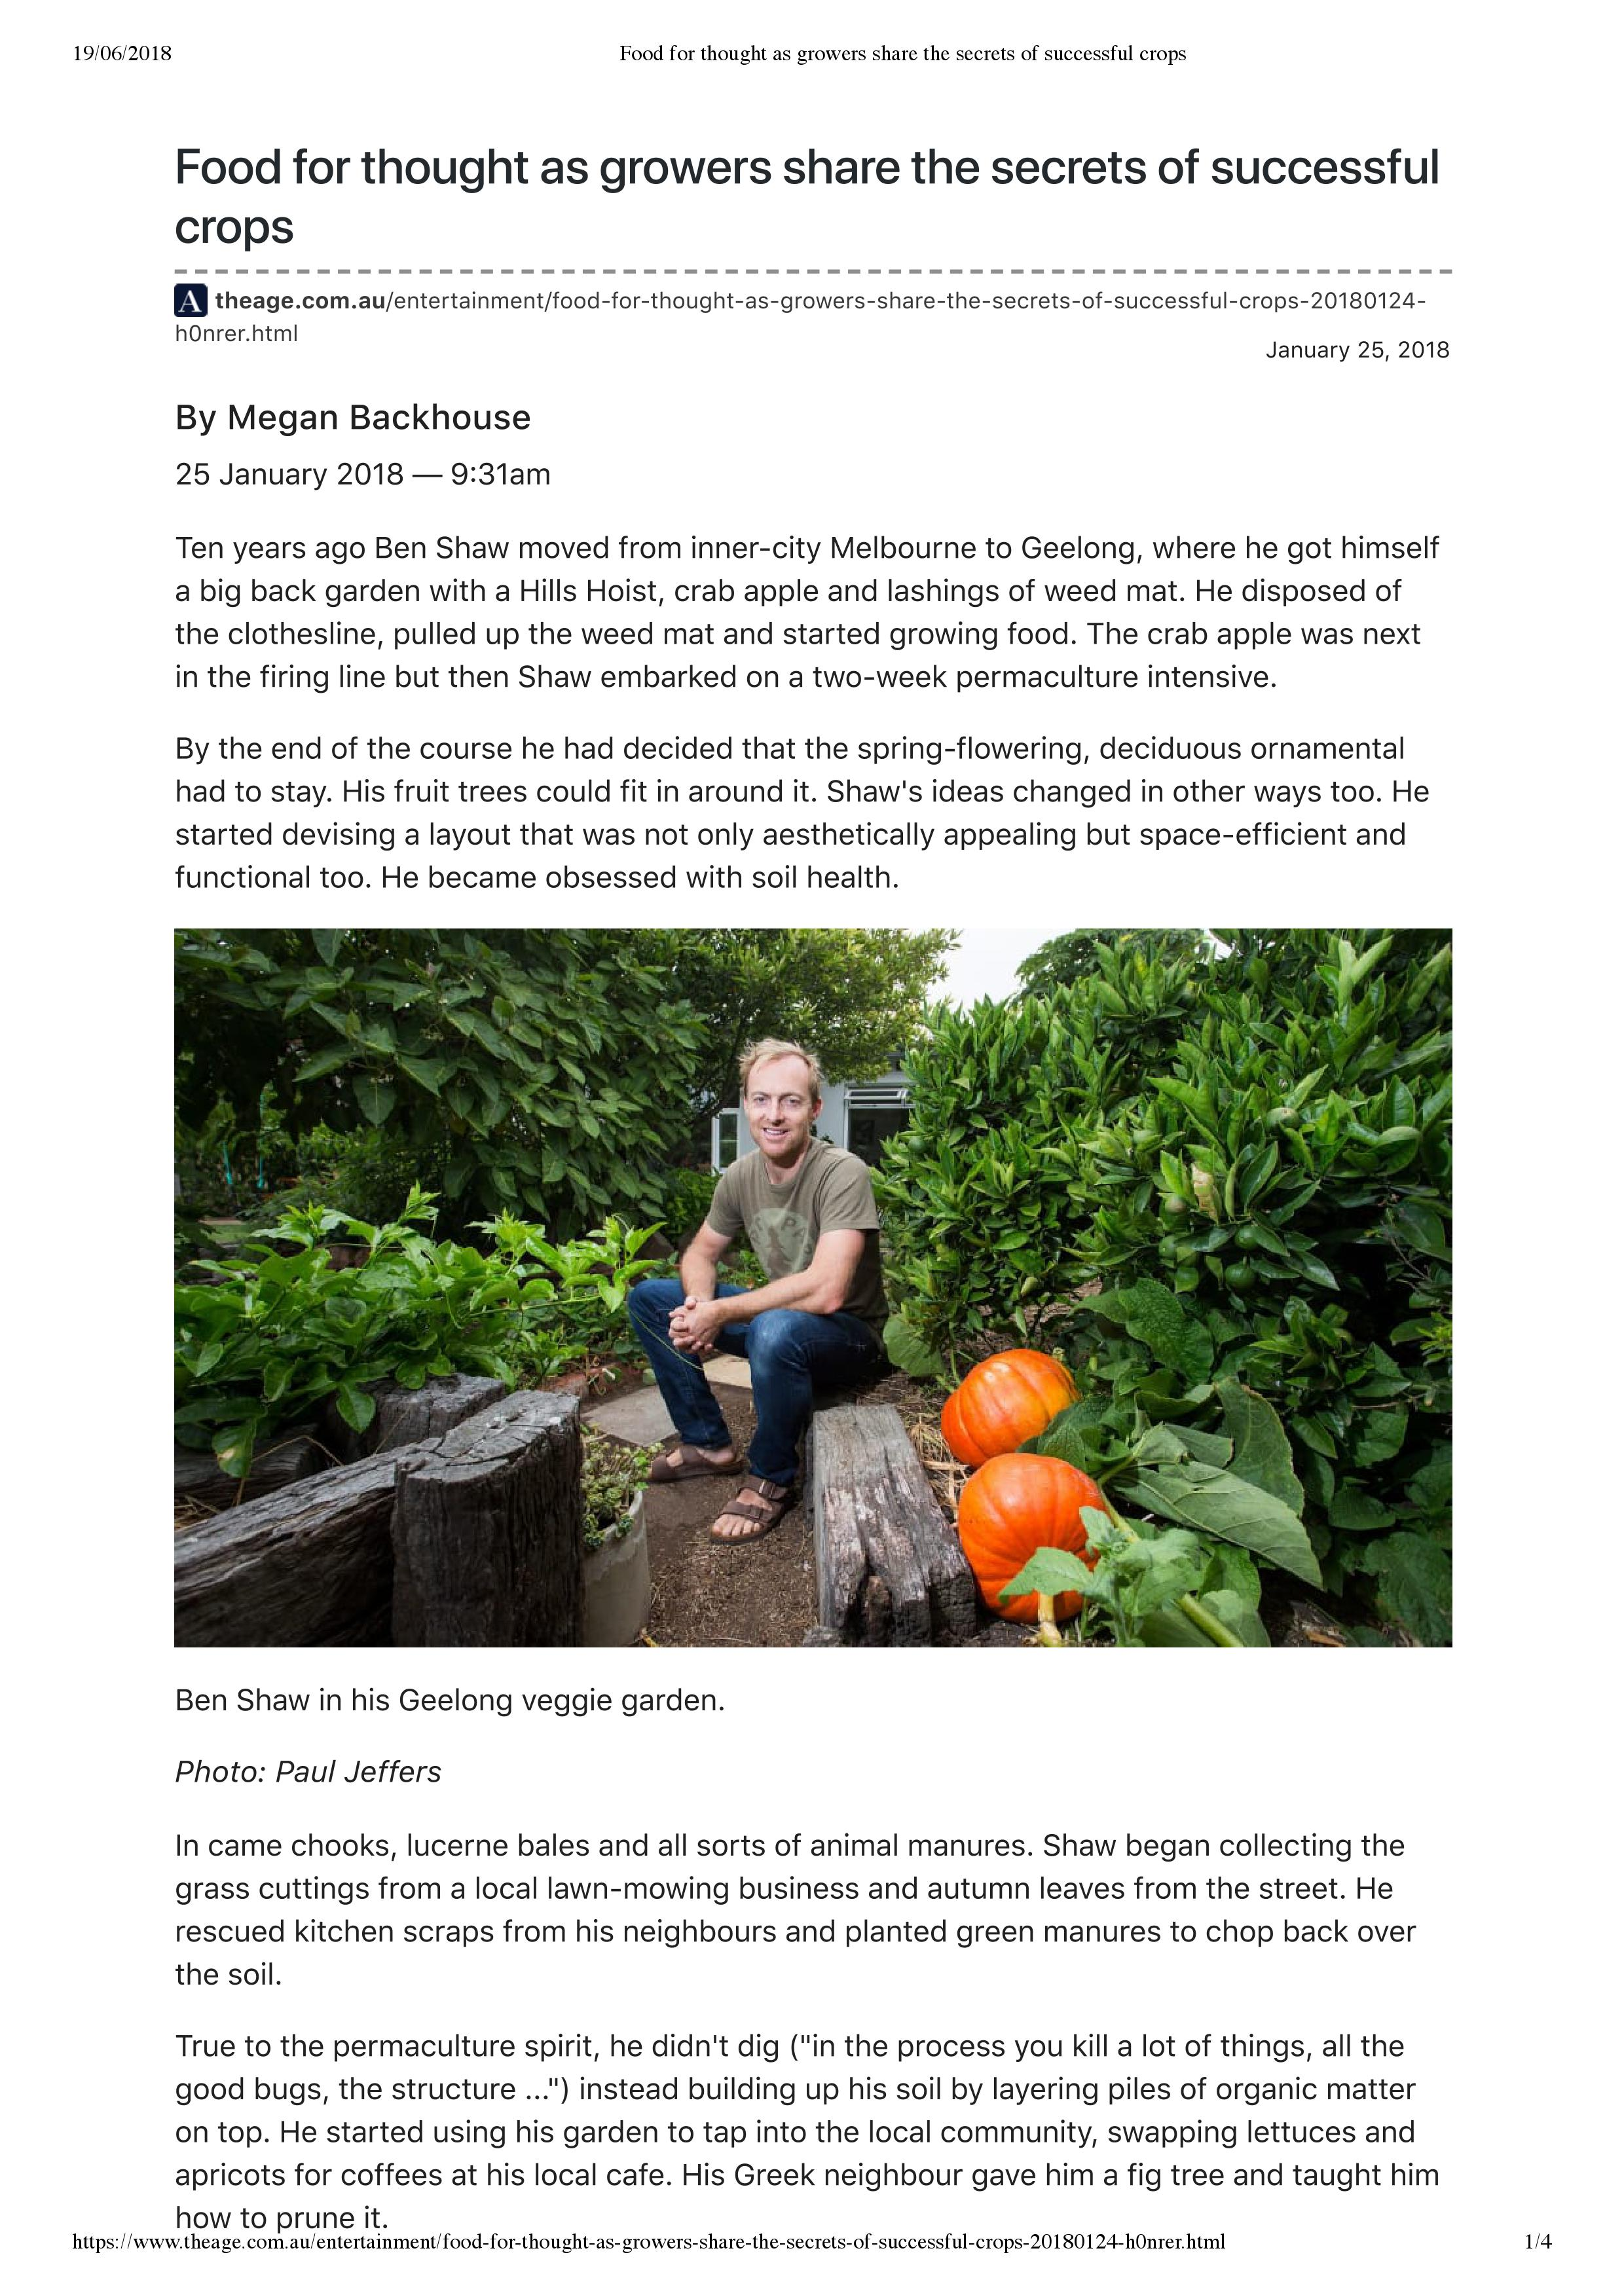 Ben Shaw Permaculture, Geelong for The Age.